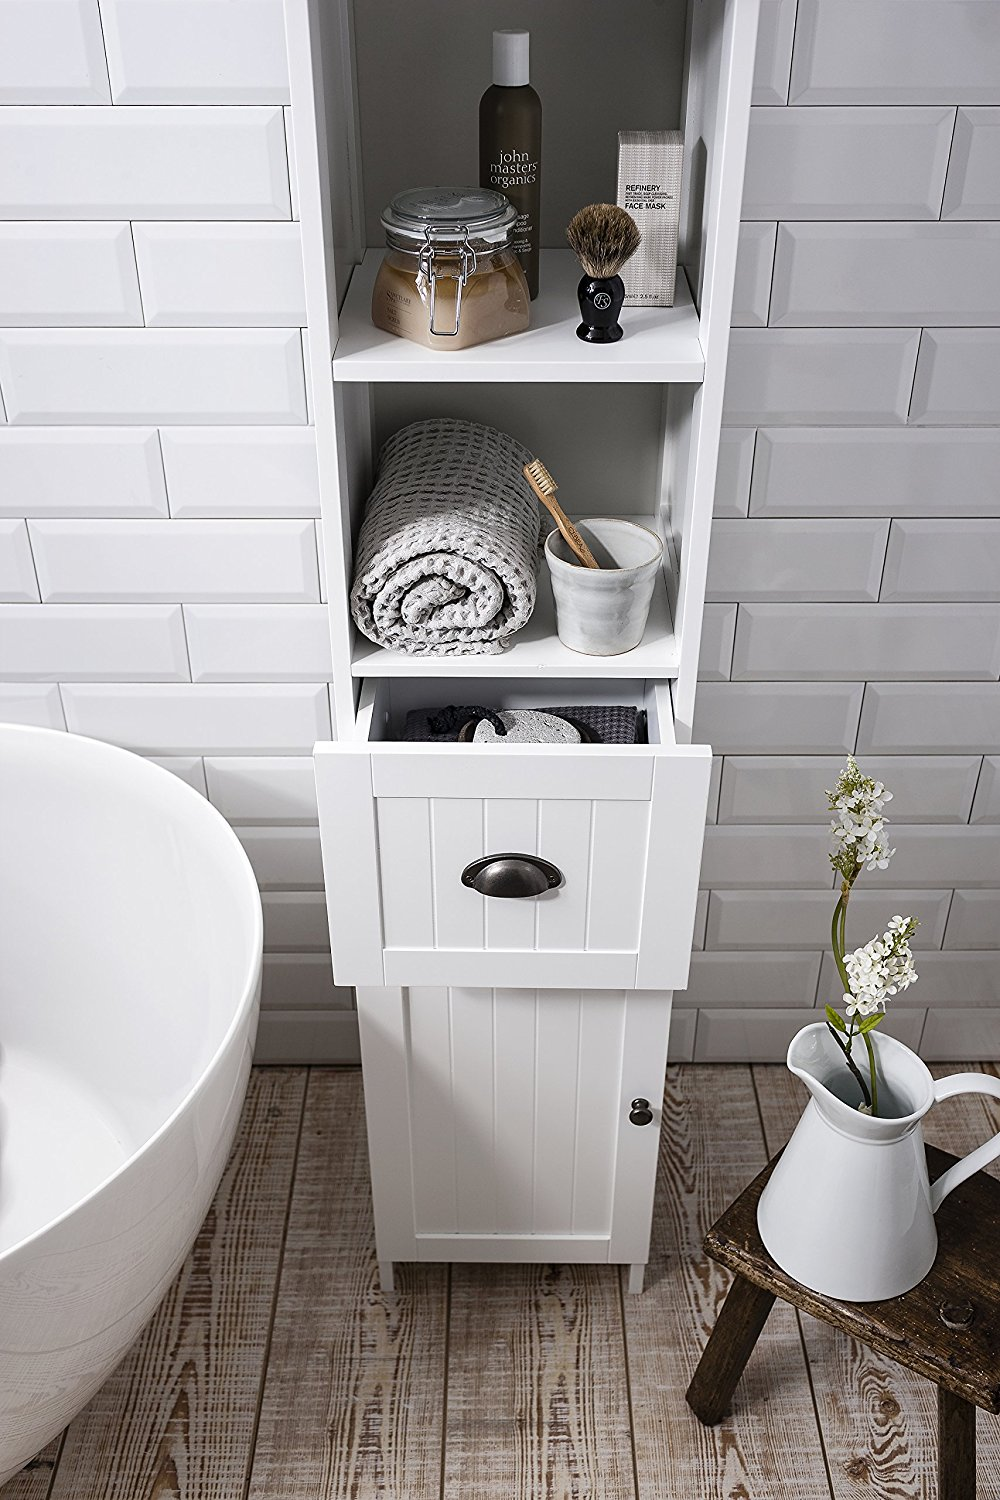 tall freestanding bathroom cabinet also tall bathroom cabinet for towels also tall bathroom cabinets free standing ikea